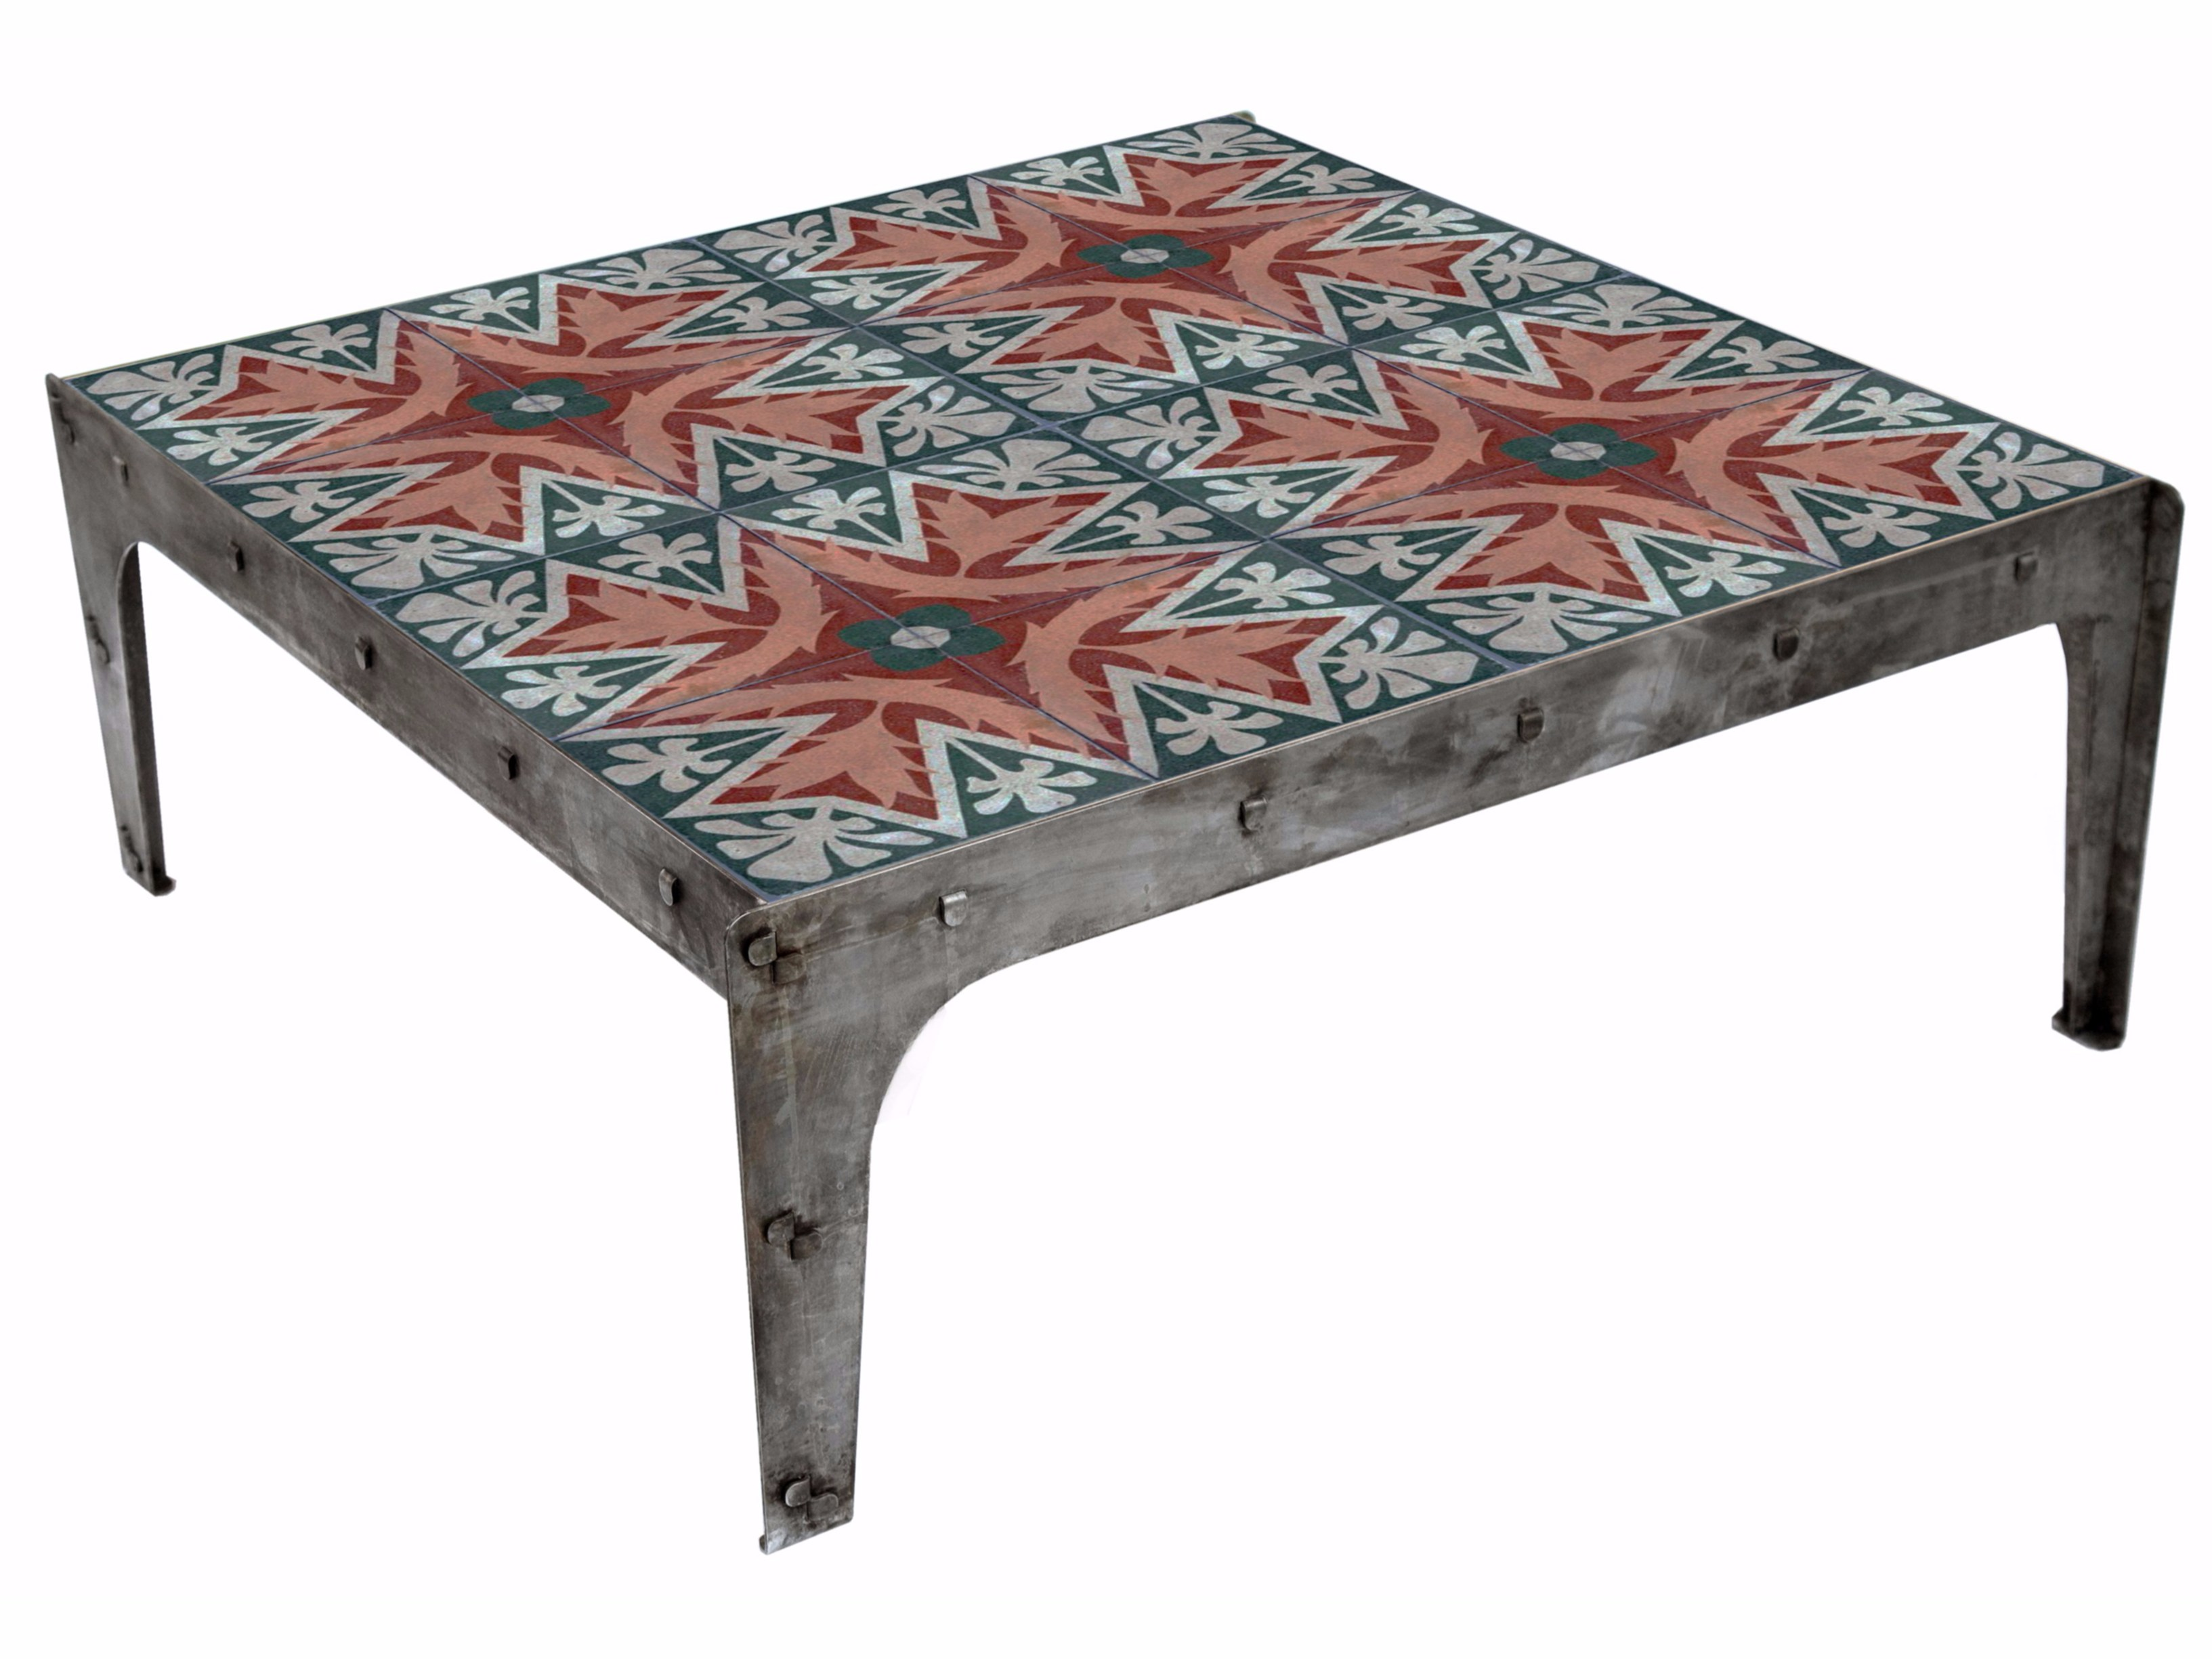 Square metal coffee table for living room WIRE By Ronda Design